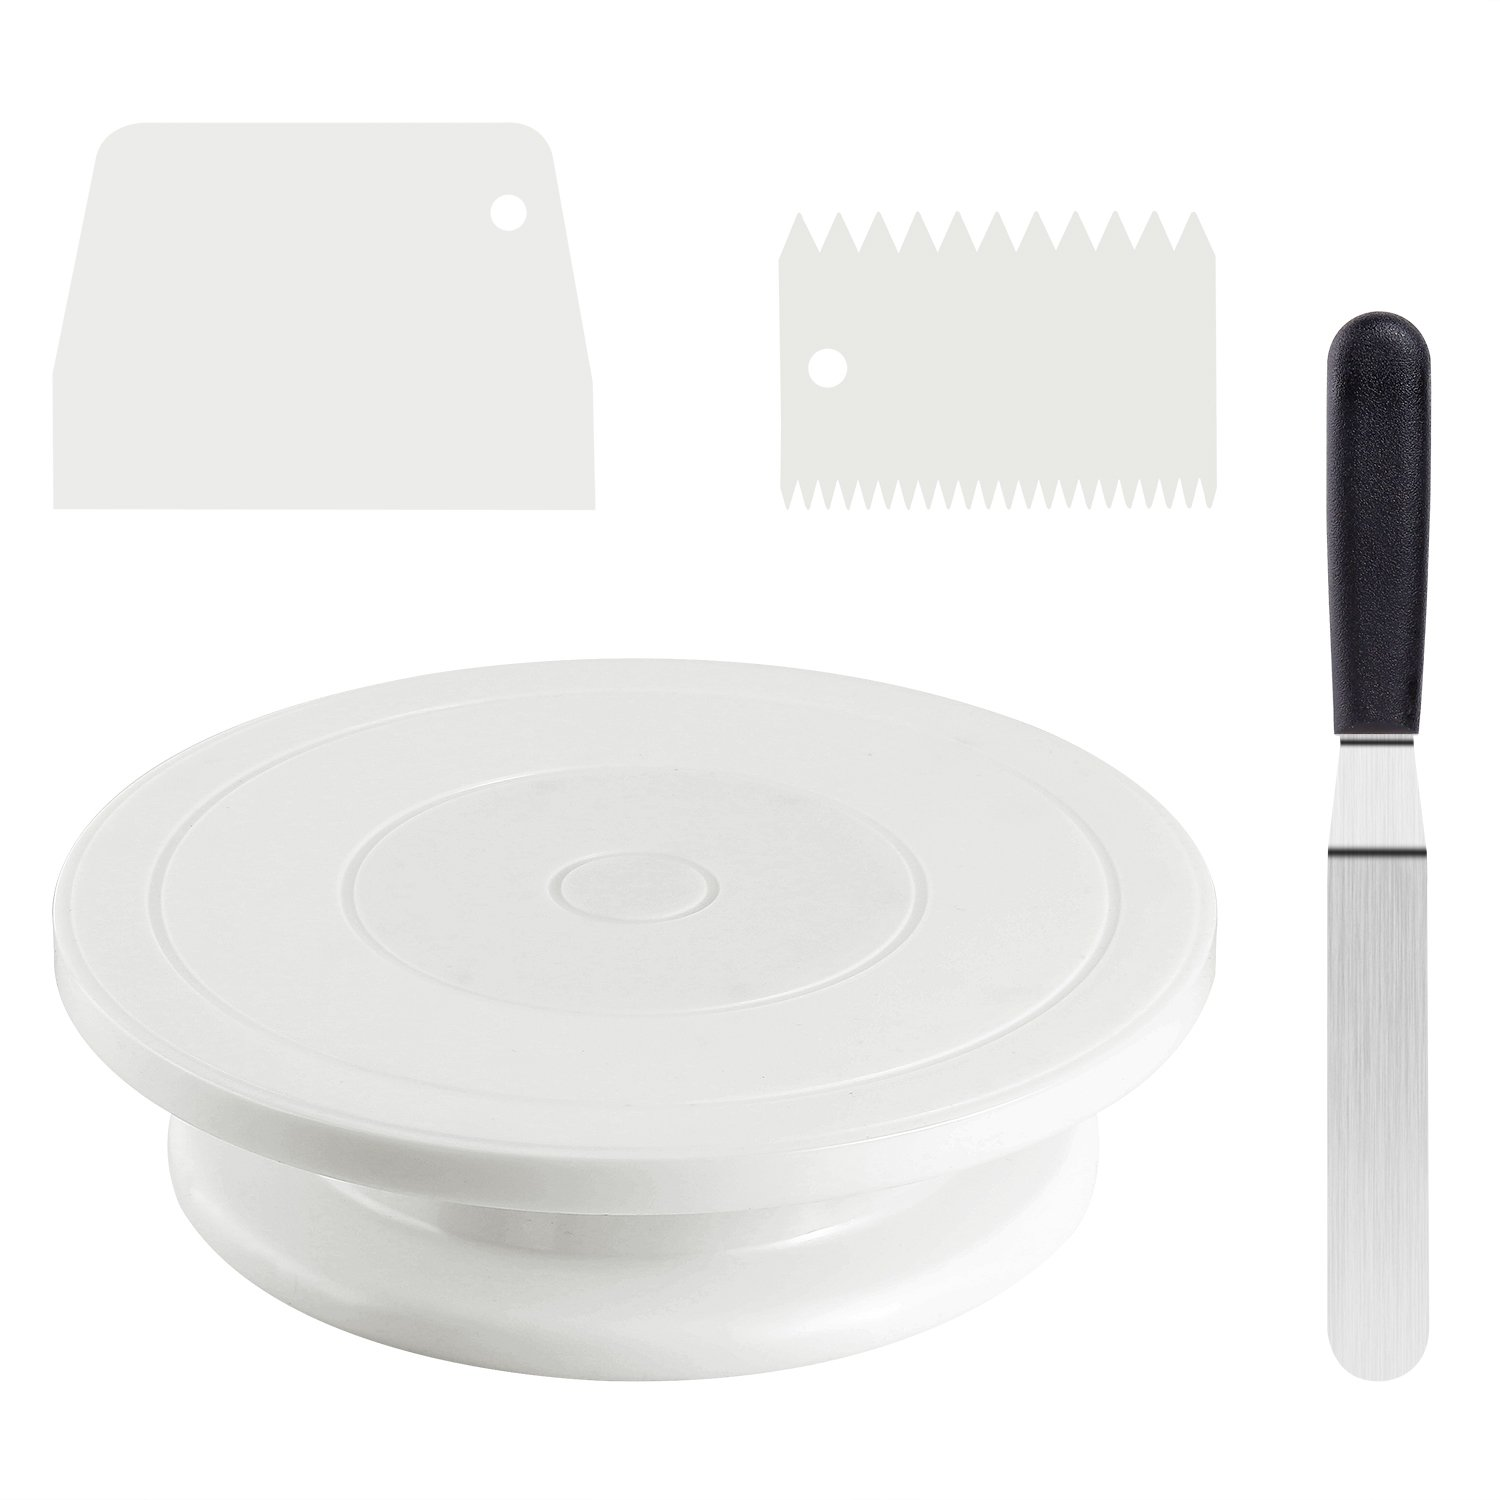 Cake Stand, Ohuhu 11'' Decorating Cake Turntable Revolving Rotating Cake Stand with Angled Icing Spatula and Comb Smoother for Baking Kit Supplies